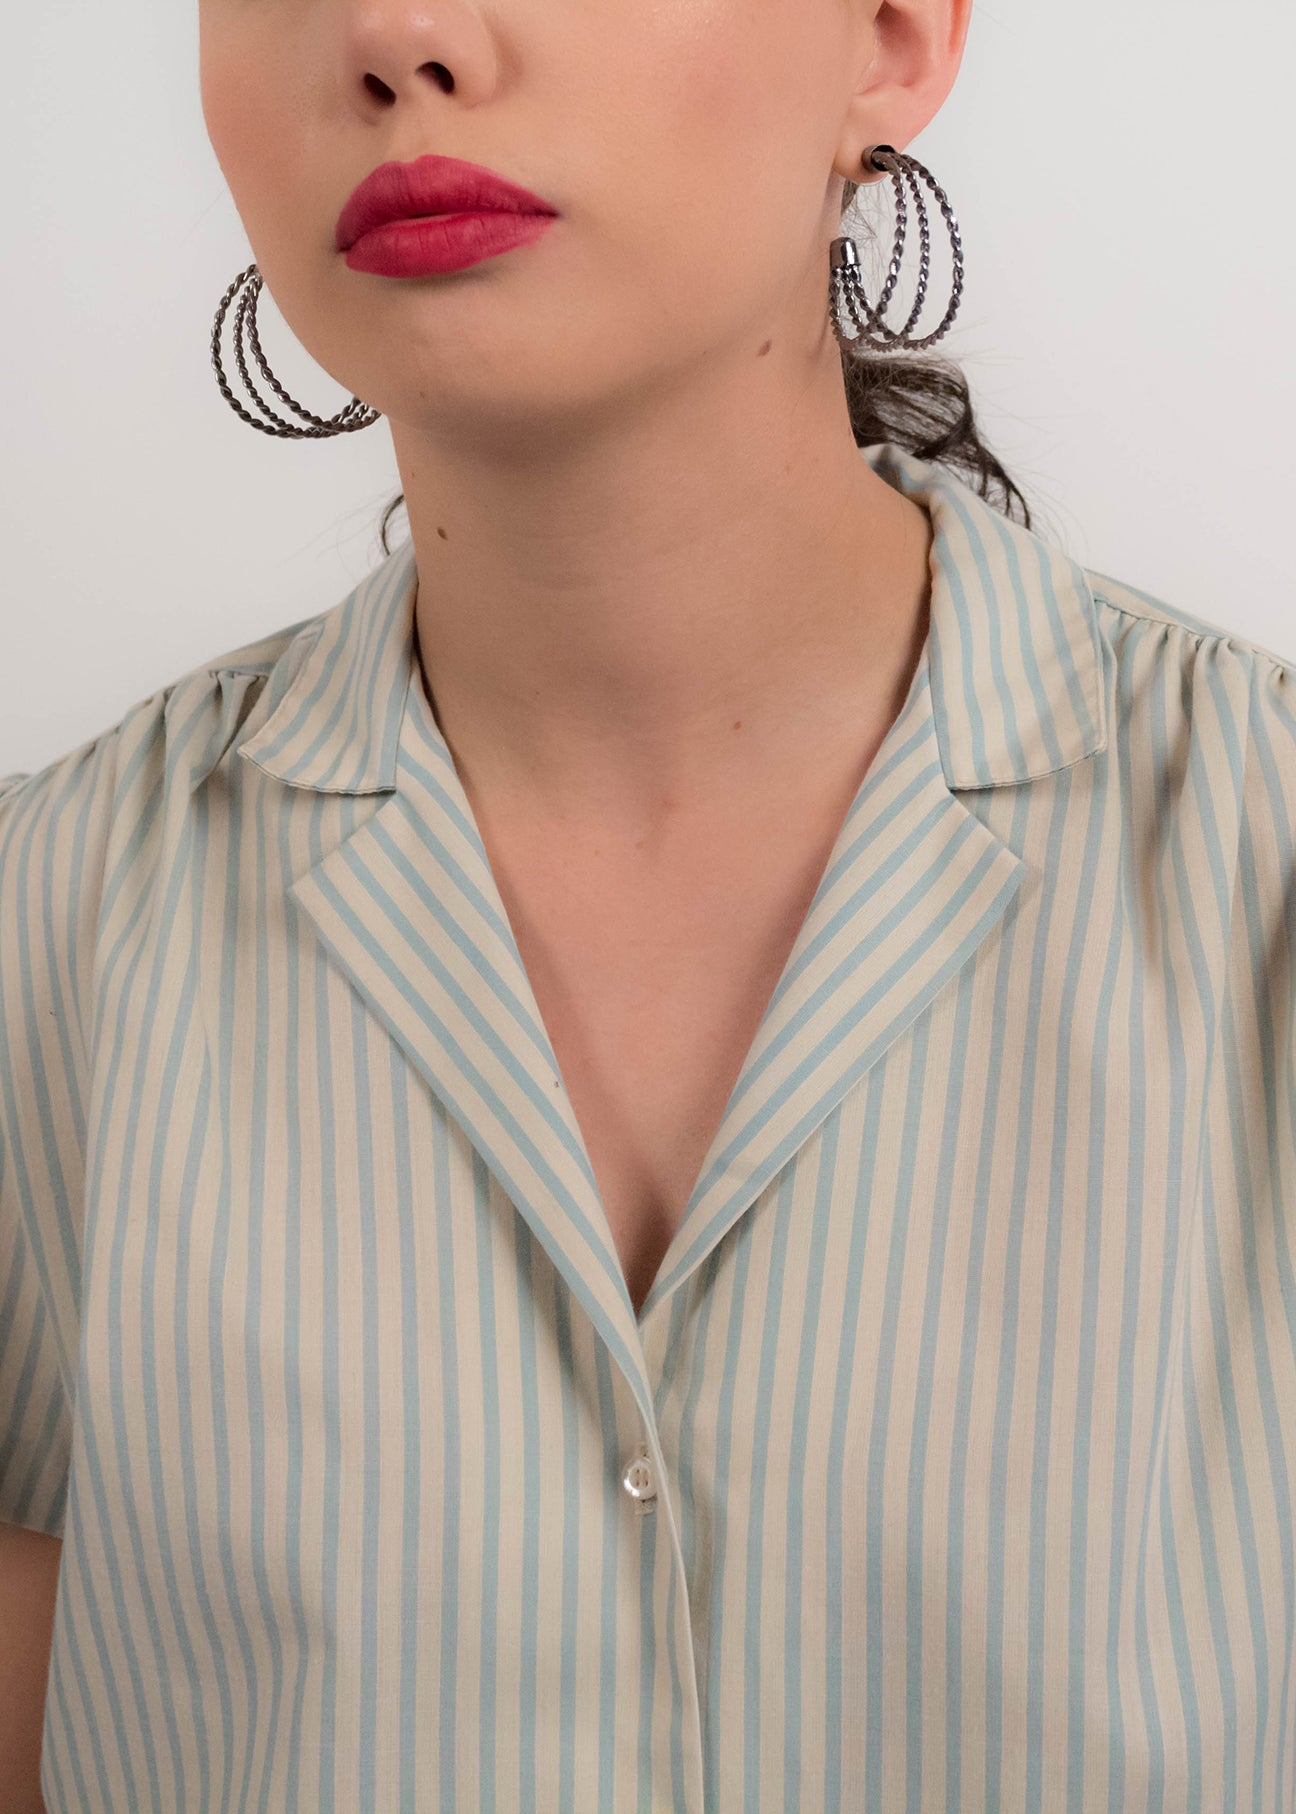 80s Striped Cotton Top